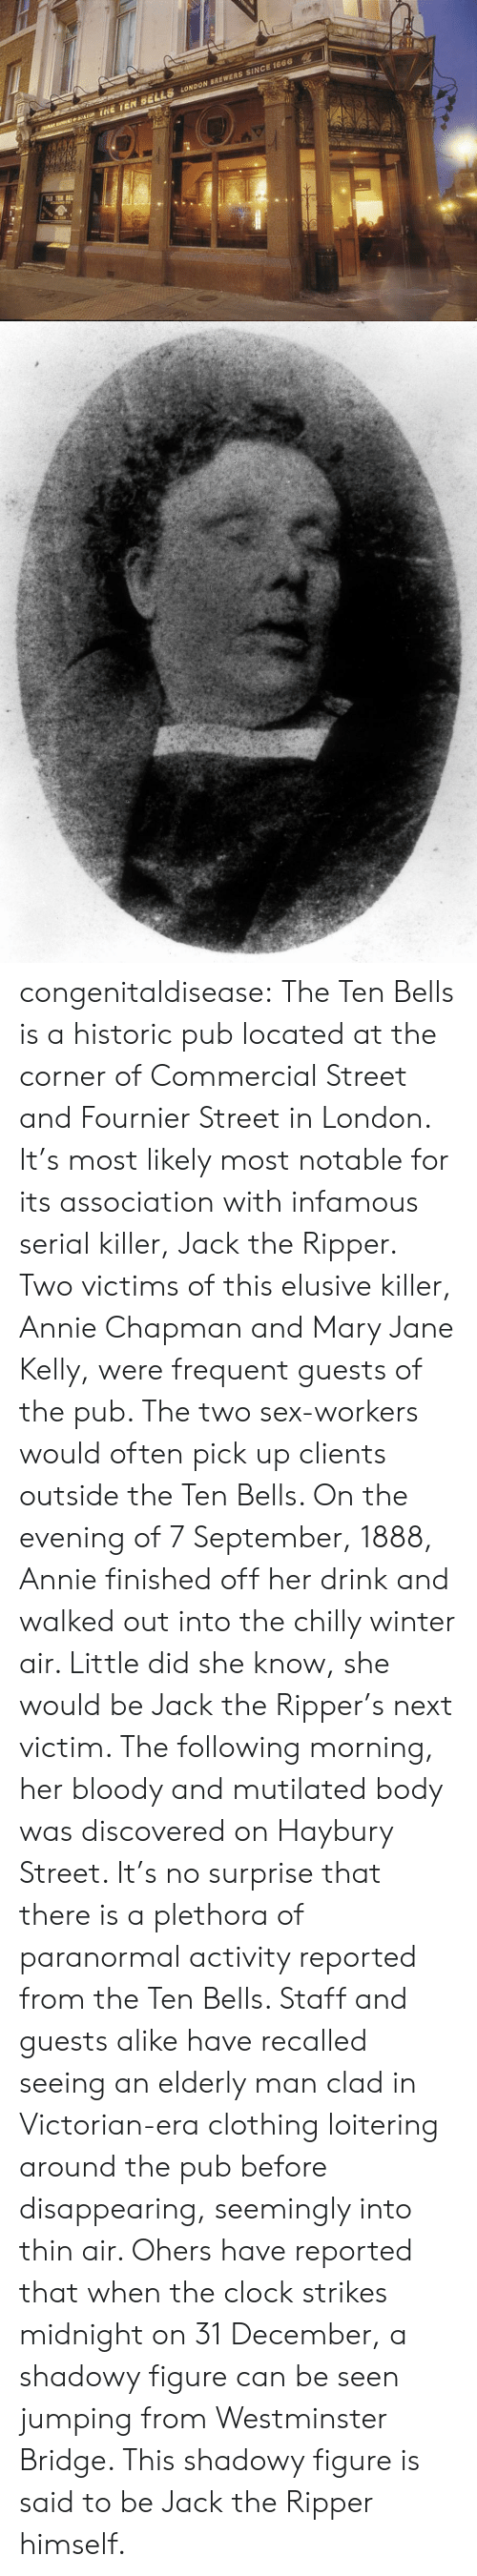 Clock, Sex, and Tumblr: INE TEN SELLS LONDON BREWERS SINCE 1666 congenitaldisease: The Ten Bells is a historic pub located at the corner of Commercial Street and Fournier Street in London. It's most likely most notable for its association with infamous serial killer, Jack the Ripper. Two victims of this elusive killer, Annie Chapman and Mary Jane Kelly, were frequent guests of the pub. The two sex-workers would often pick up clients outside the Ten Bells.  On the evening of 7 September, 1888, Annie finished off her drink and walked out into the chilly winter air. Little did she know, she would be Jack the Ripper's next victim. The following morning, her bloody and mutilated body was discovered on Haybury Street.  It's no surprise that there is a plethora of paranormal activity reported from the Ten Bells. Staff and guests alike have recalled seeing an elderly man clad in Victorian-era clothing loitering around the pub before disappearing, seemingly into thin air. Ohers have reported that when the clock strikes midnight on 31 December, a shadowy figure can be seen jumping from Westminster Bridge. This shadowy figure is said to be Jack the Ripper himself.